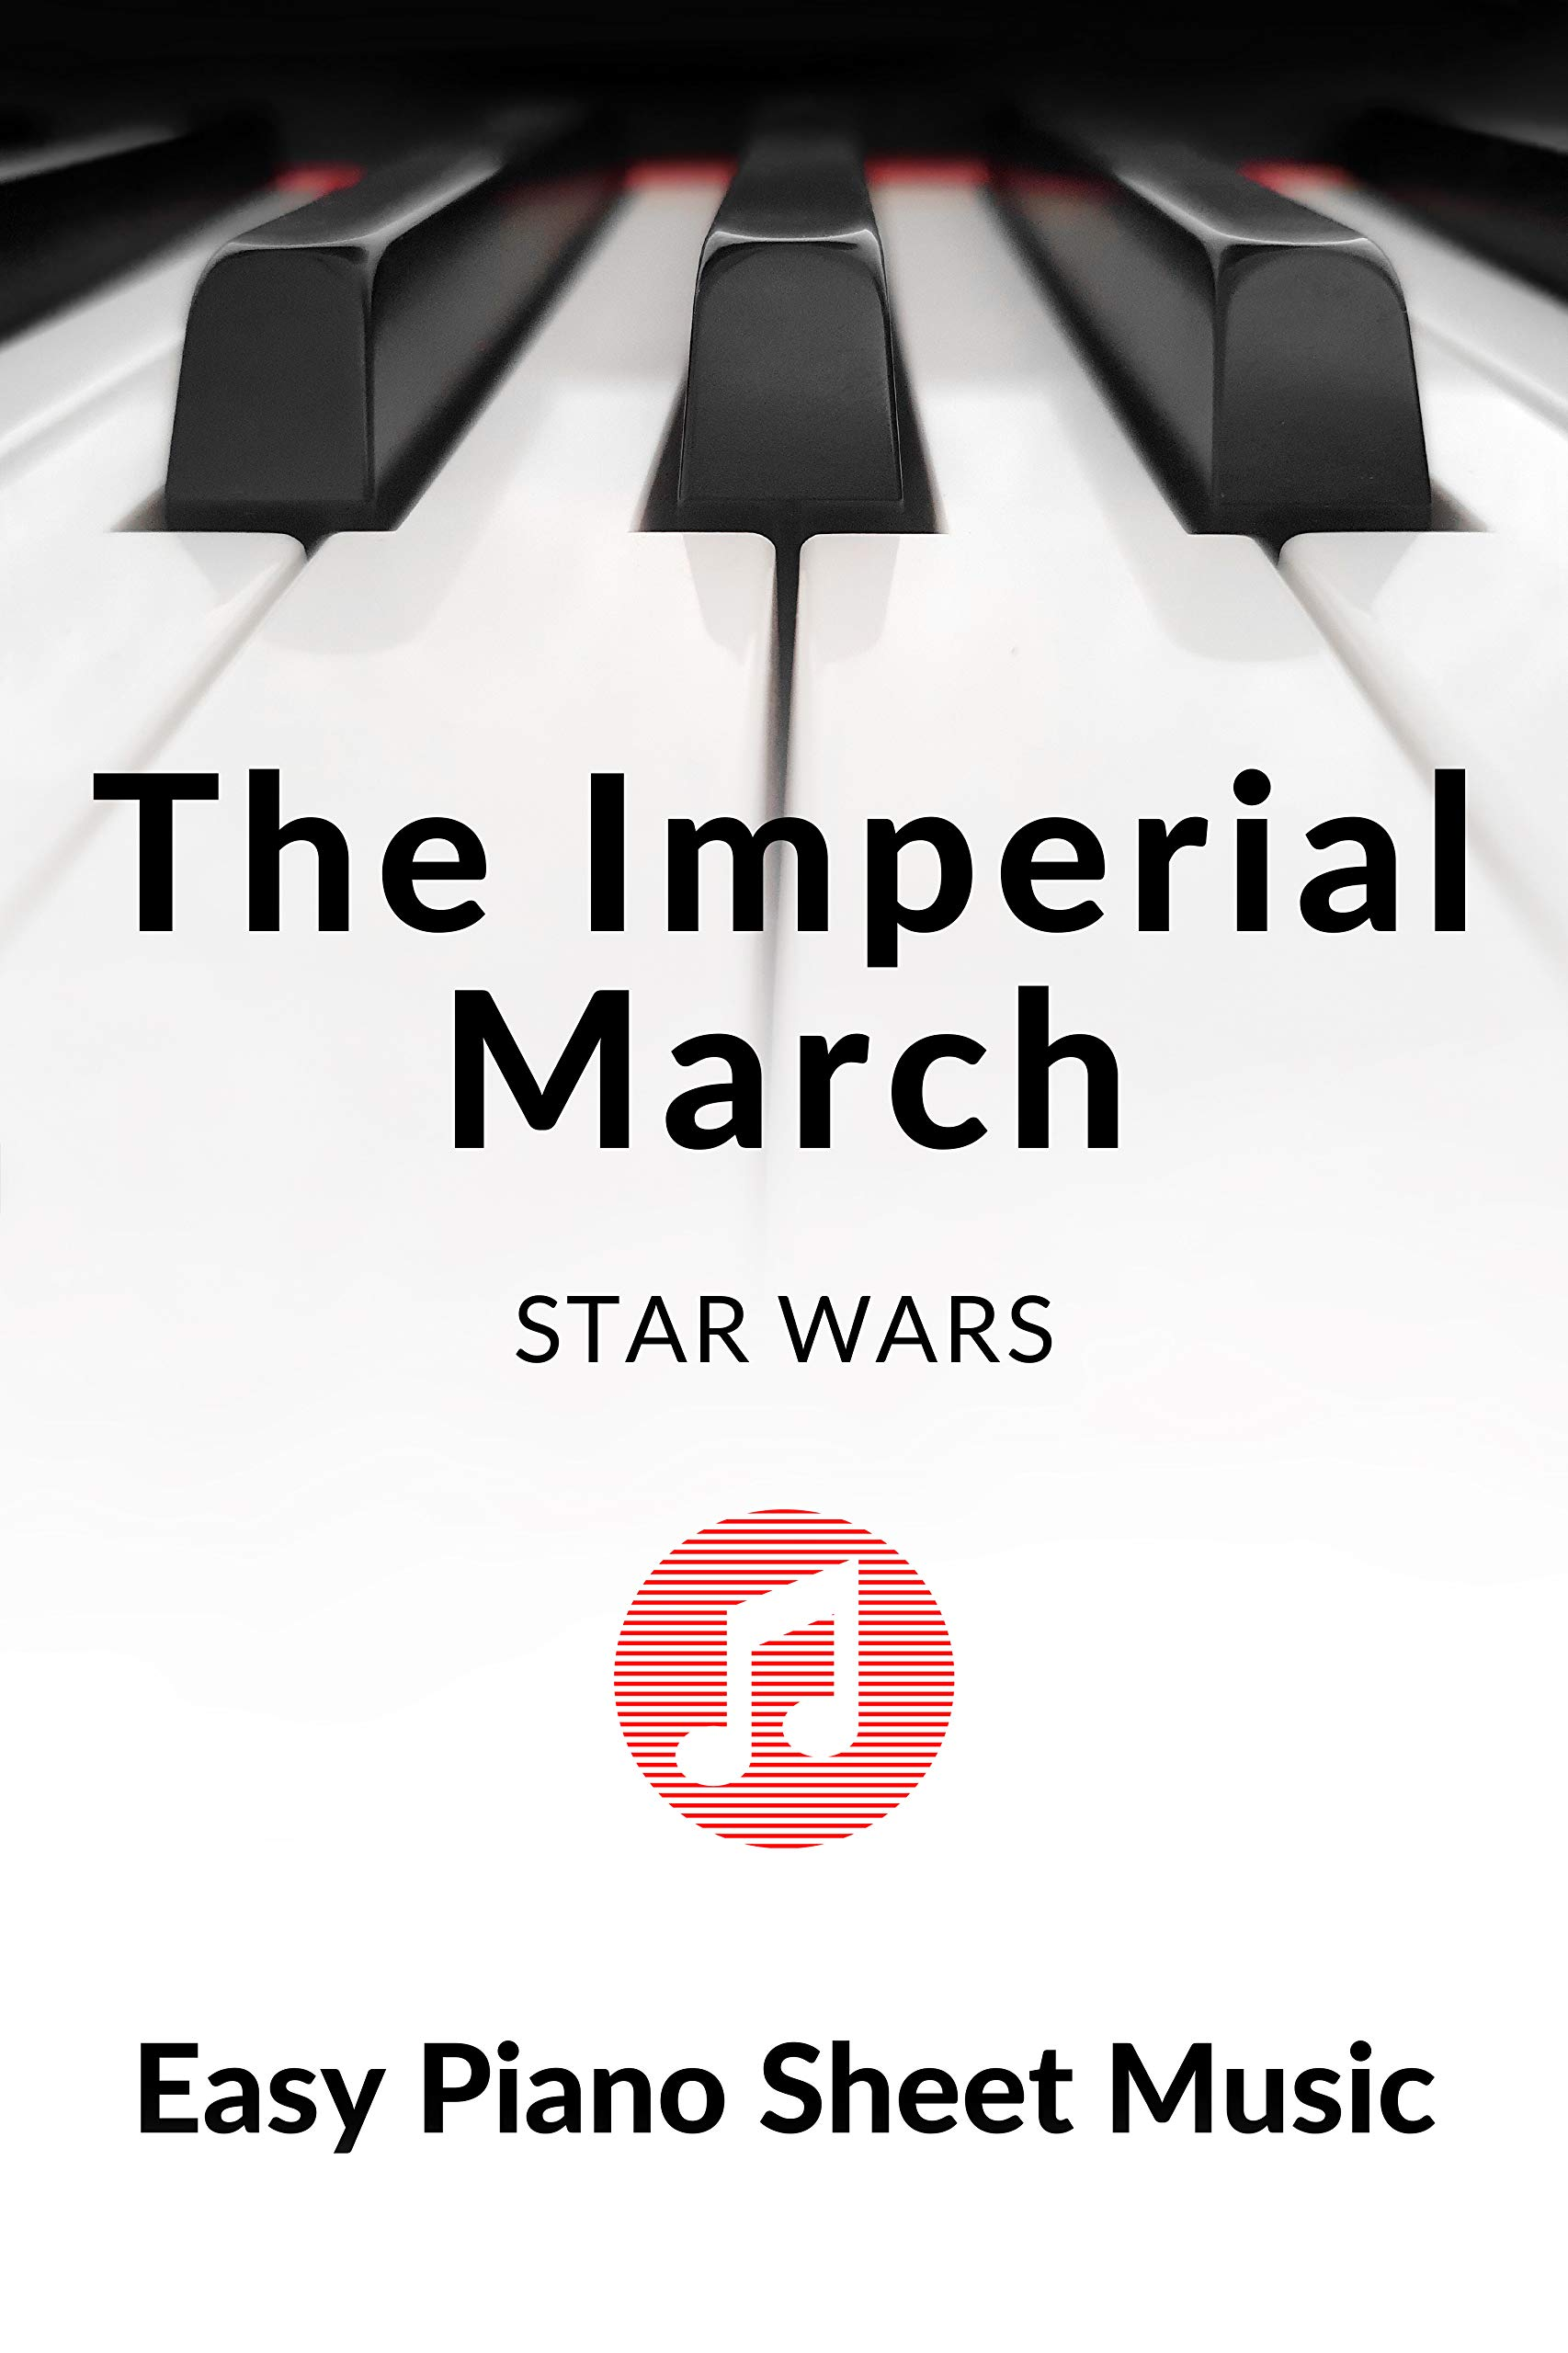 The Imperial March From Star Wars - Easy Piano Sheet Music for Beginners: Teach Yourself How to Play. Popular, Movie Song for Adults, Kids, young musicians, students, teachers - Big Notes.